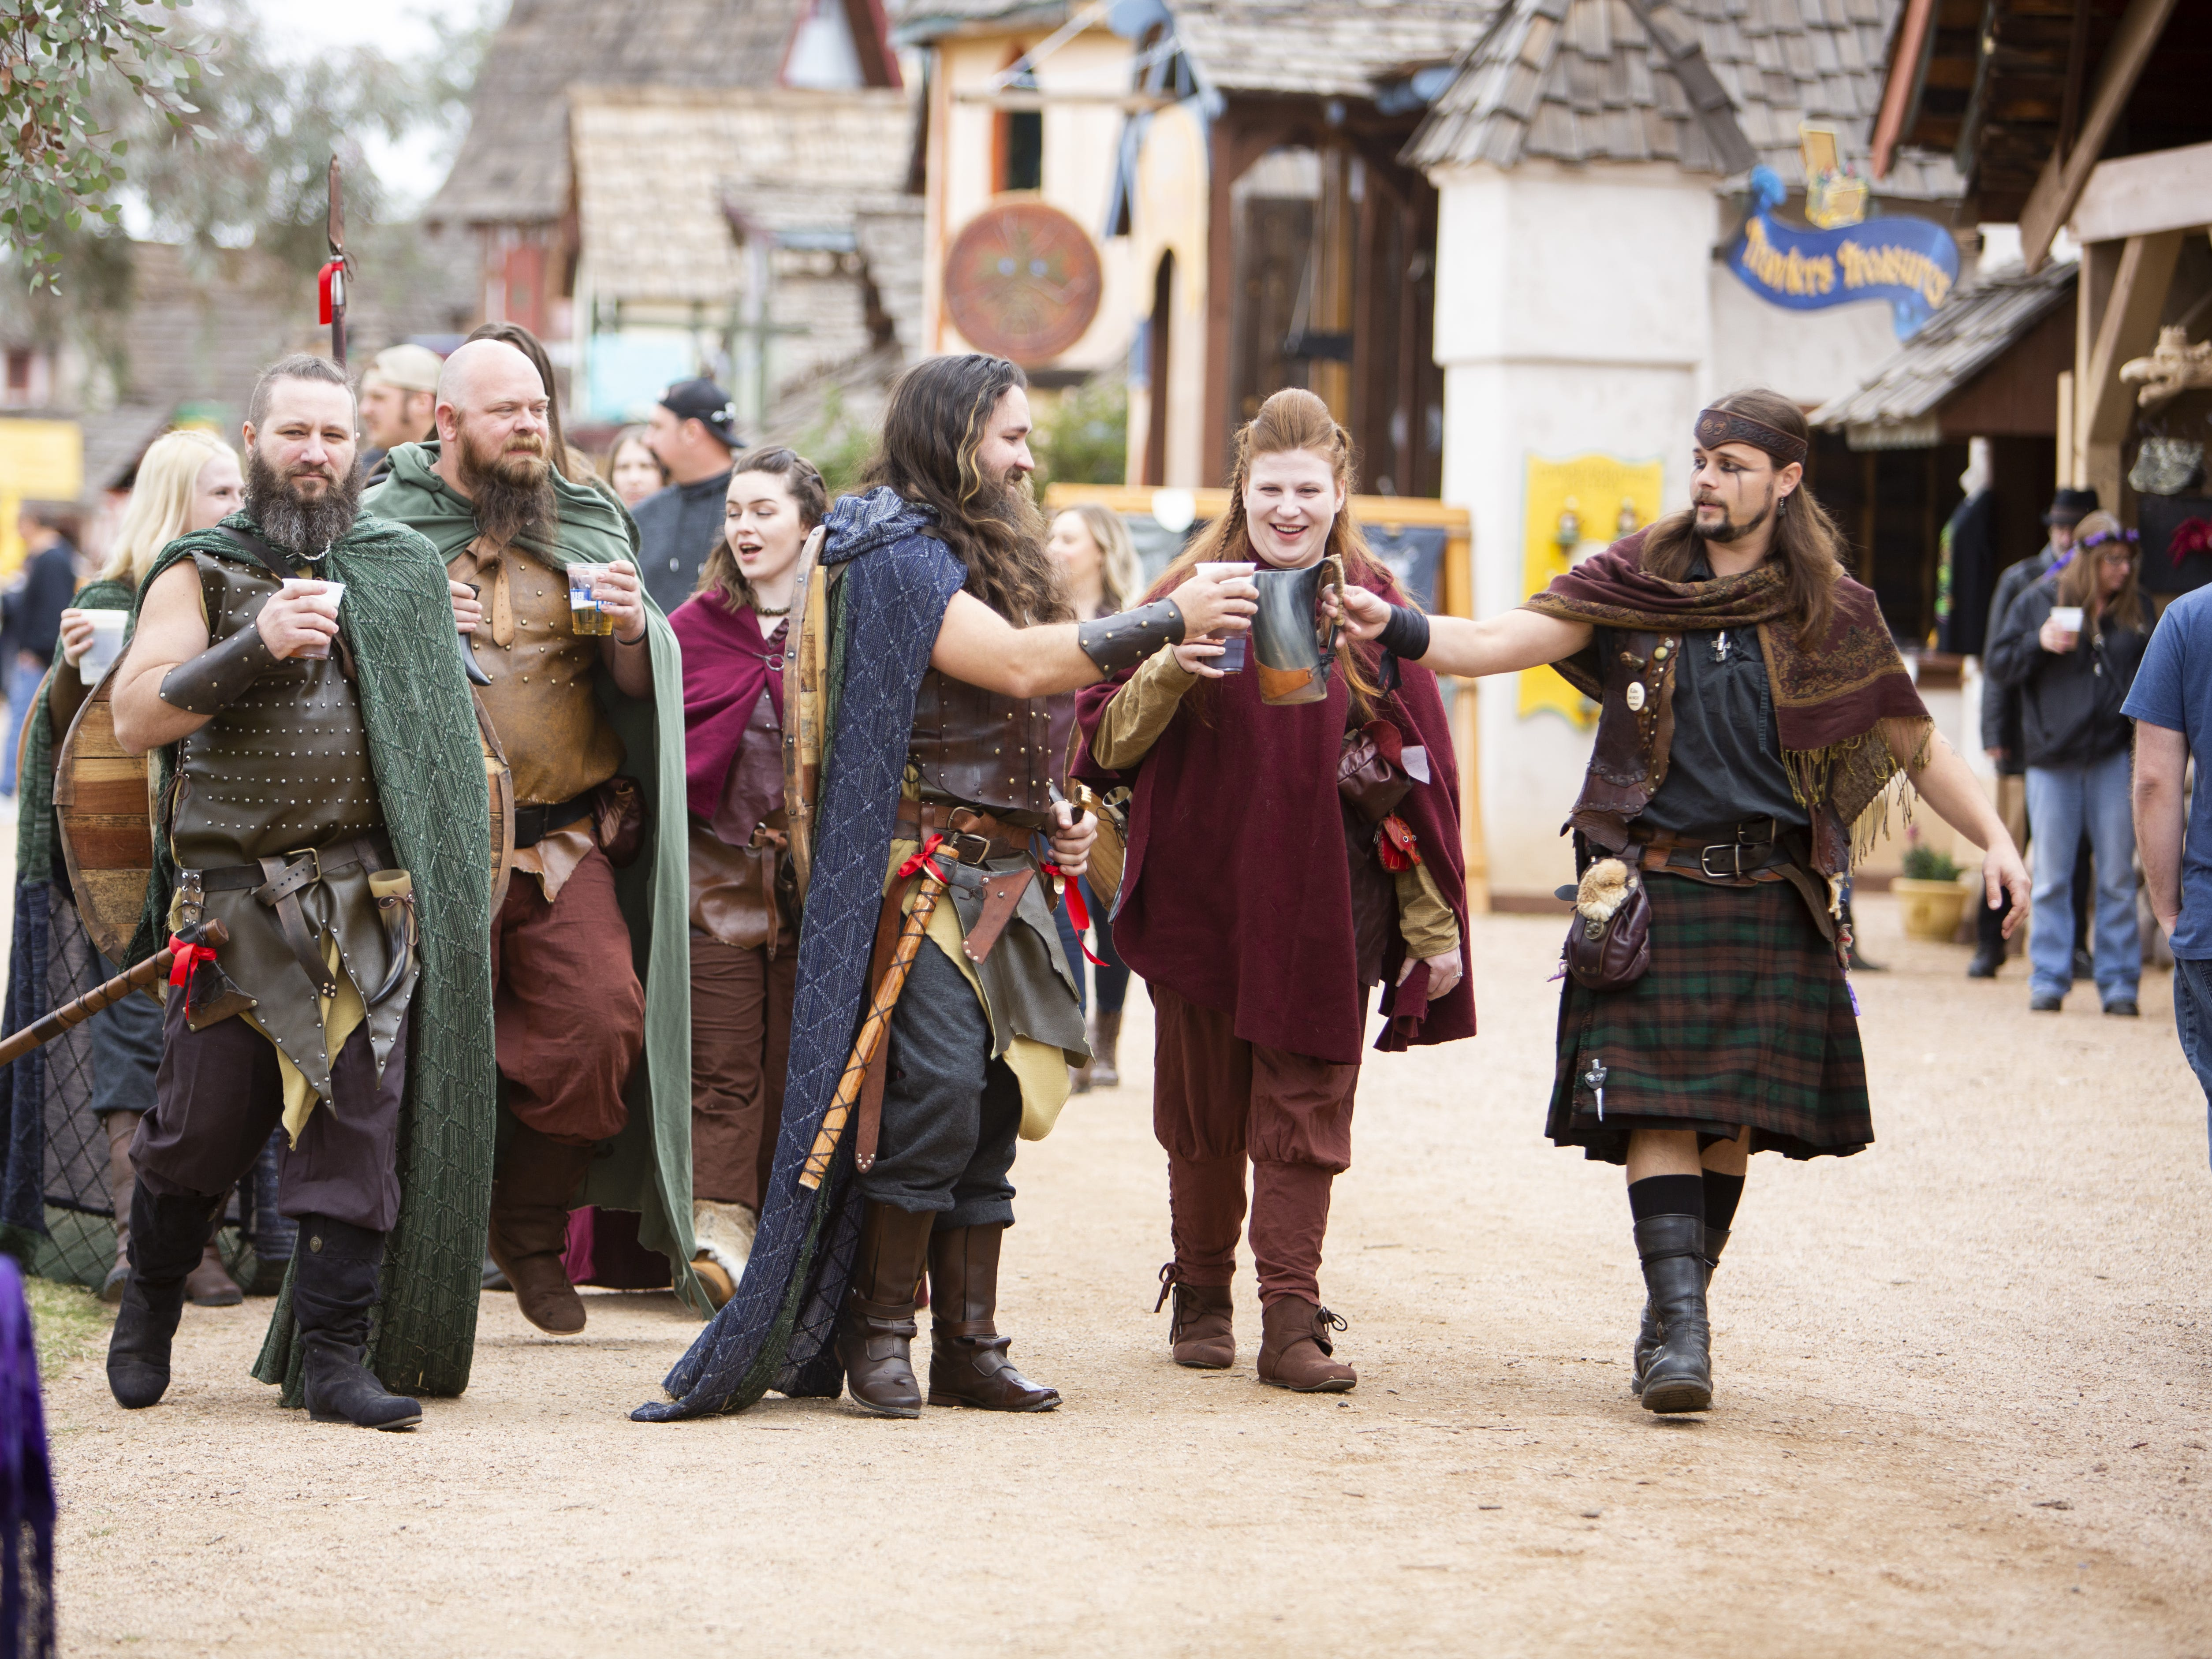 A group drinking beer in kilts and capes walks down a pathway at the Arizona Renaissance Festival 2019 on Feb. 9, 2019 in Gold Canyon, Ariz.